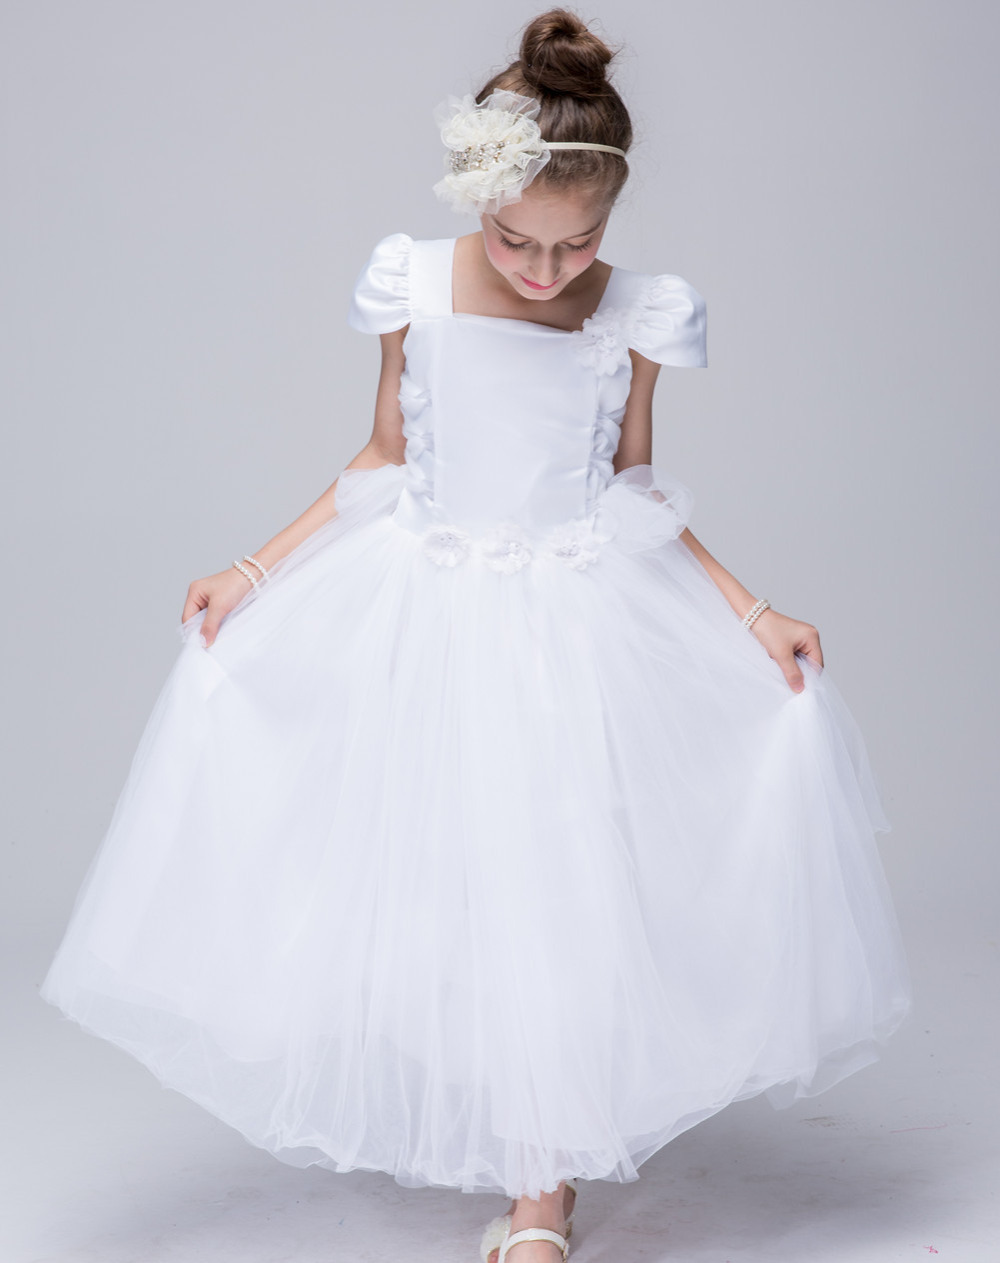 Girls Bridesmaid Long Dresses White Pink Wedding Pageant Party Gown Princess Clothes Tulle Sundress Frocks For 4 6 8 10 12 Years lf40203 sexy white pink blue strappy heart heel wedge wedding sandals sz 4 5 6 7 8 9 10